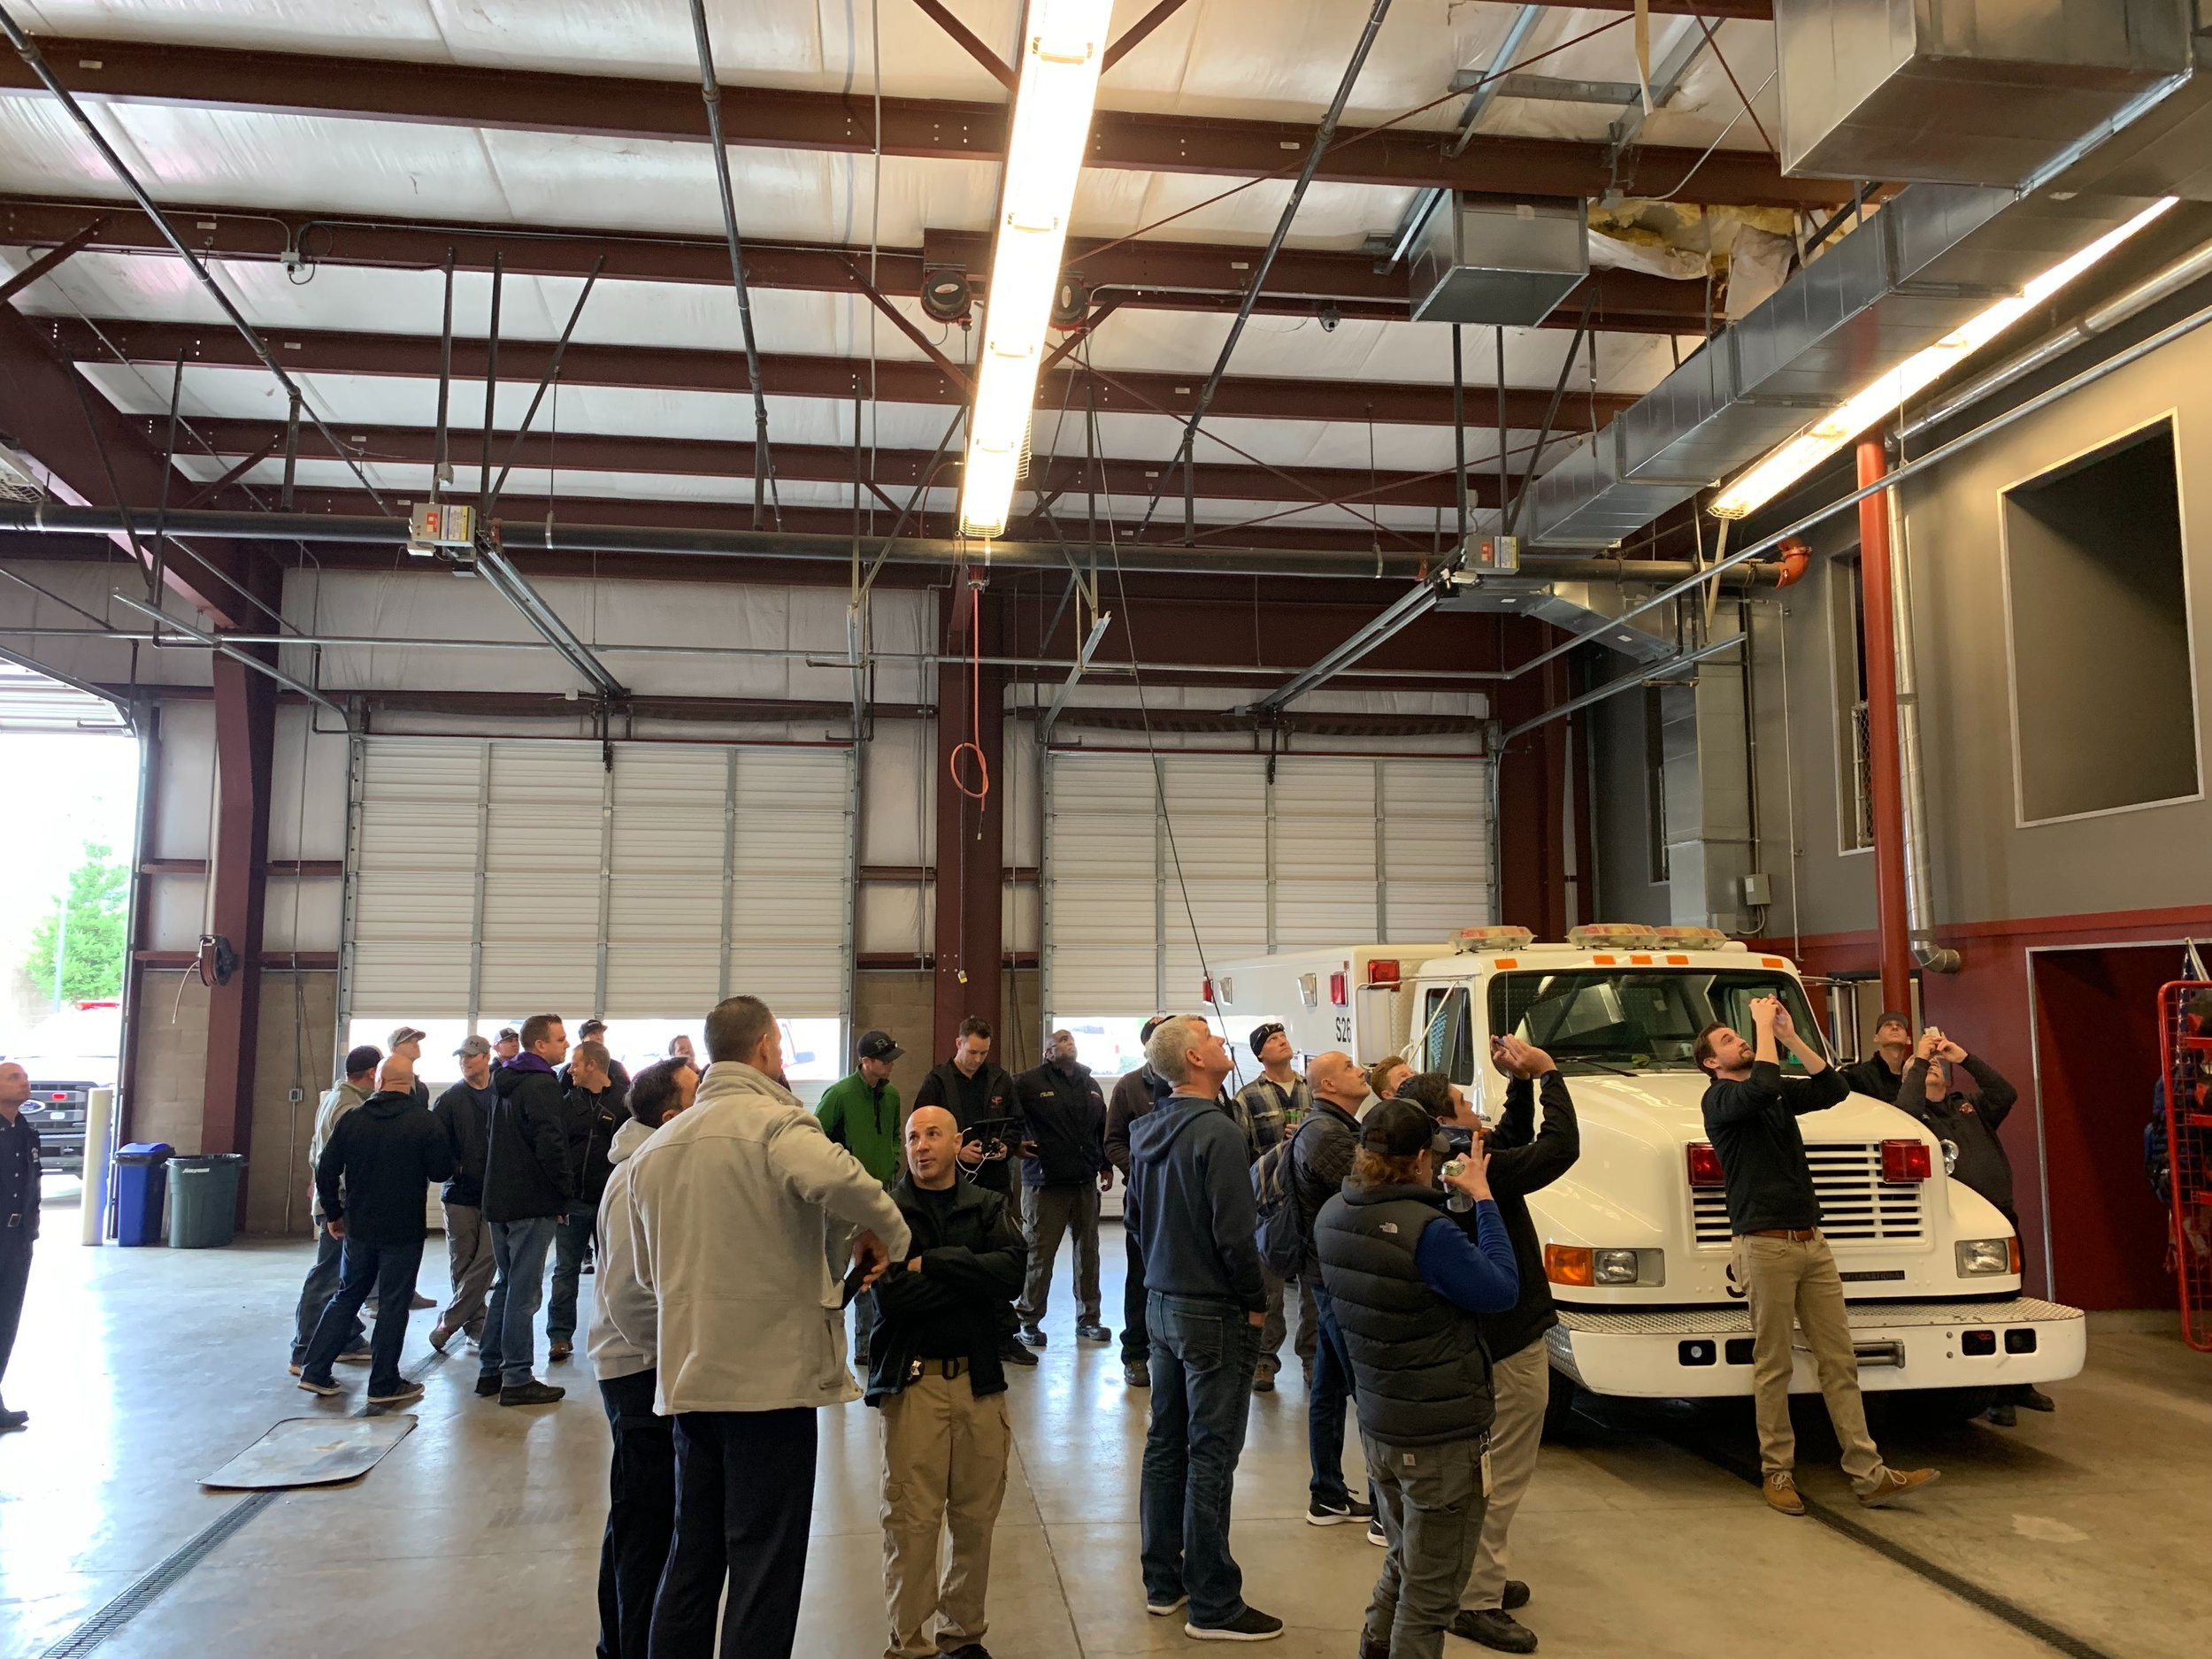 Firefighters in a firehouse with large white truck.jpg